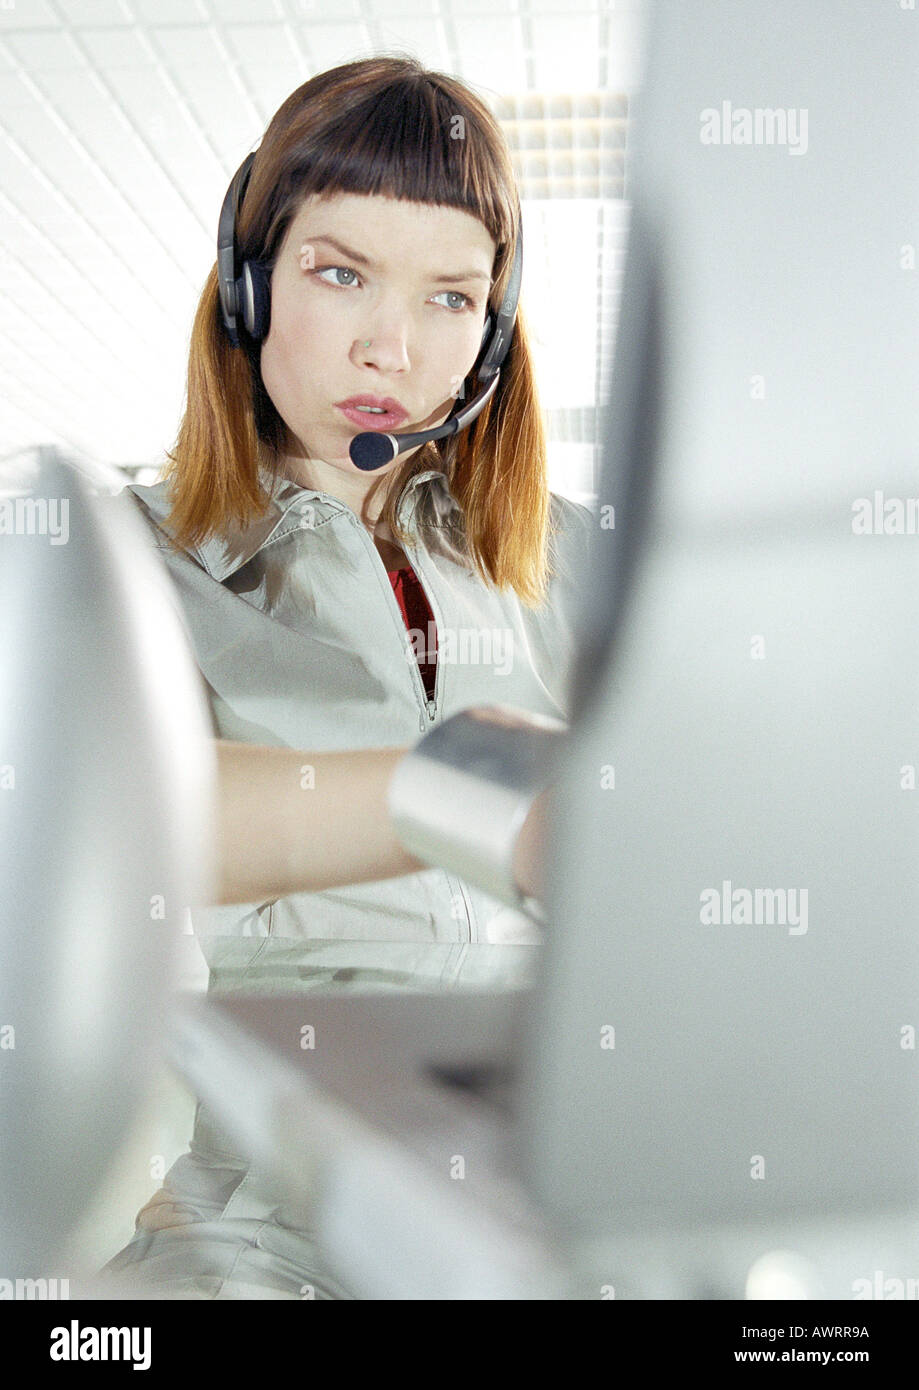 Woman at desk wearing headset - Stock Image